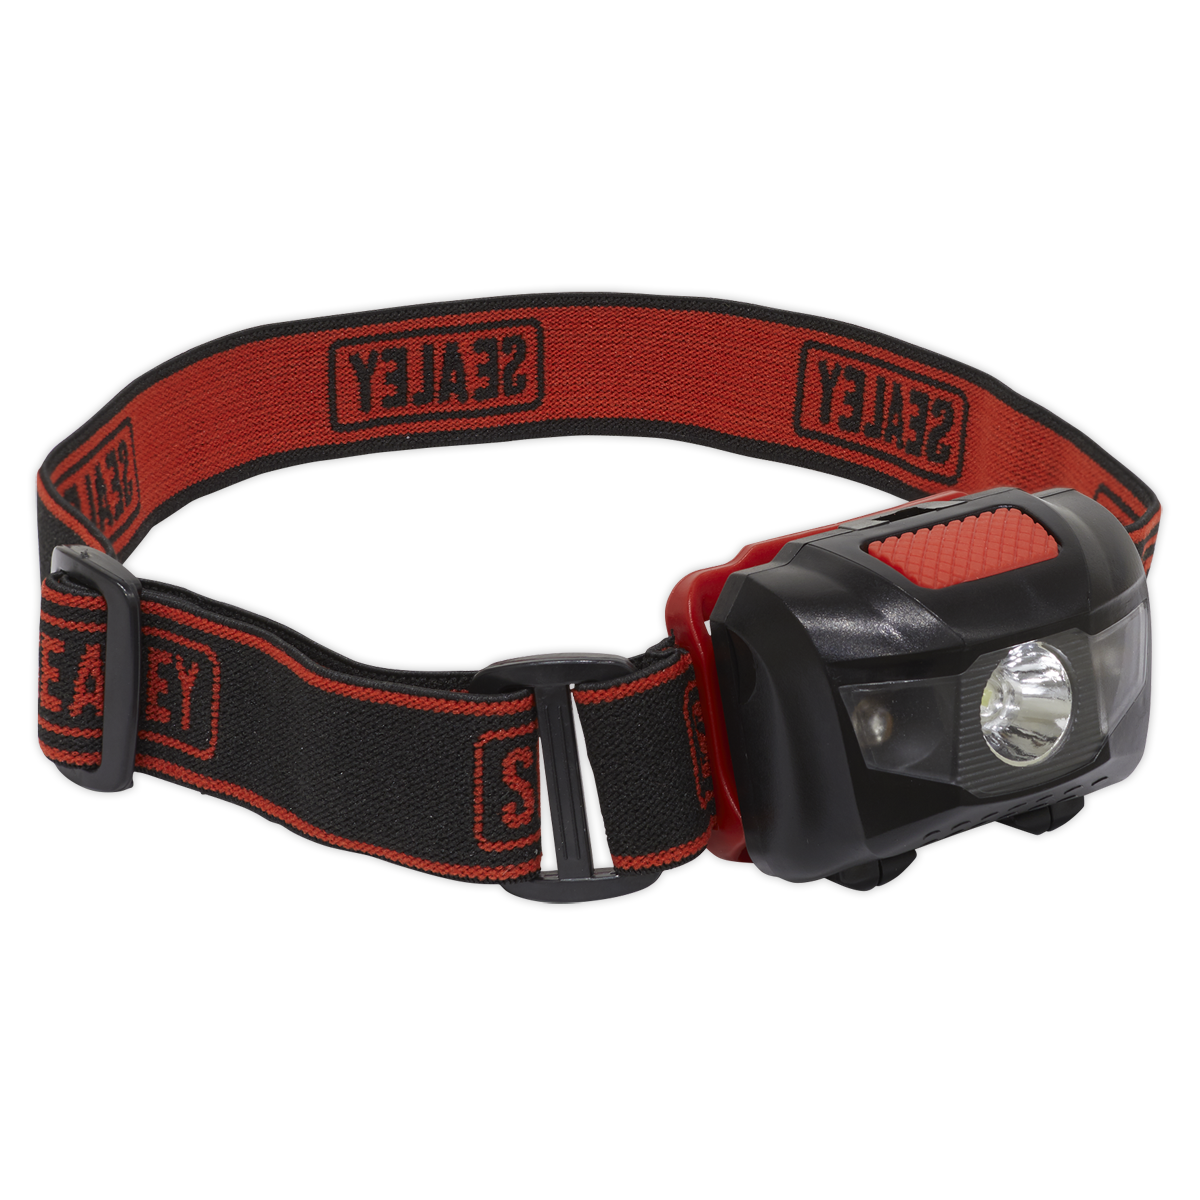 Head Torch 3W + 2 LED 3 x AAA Cell